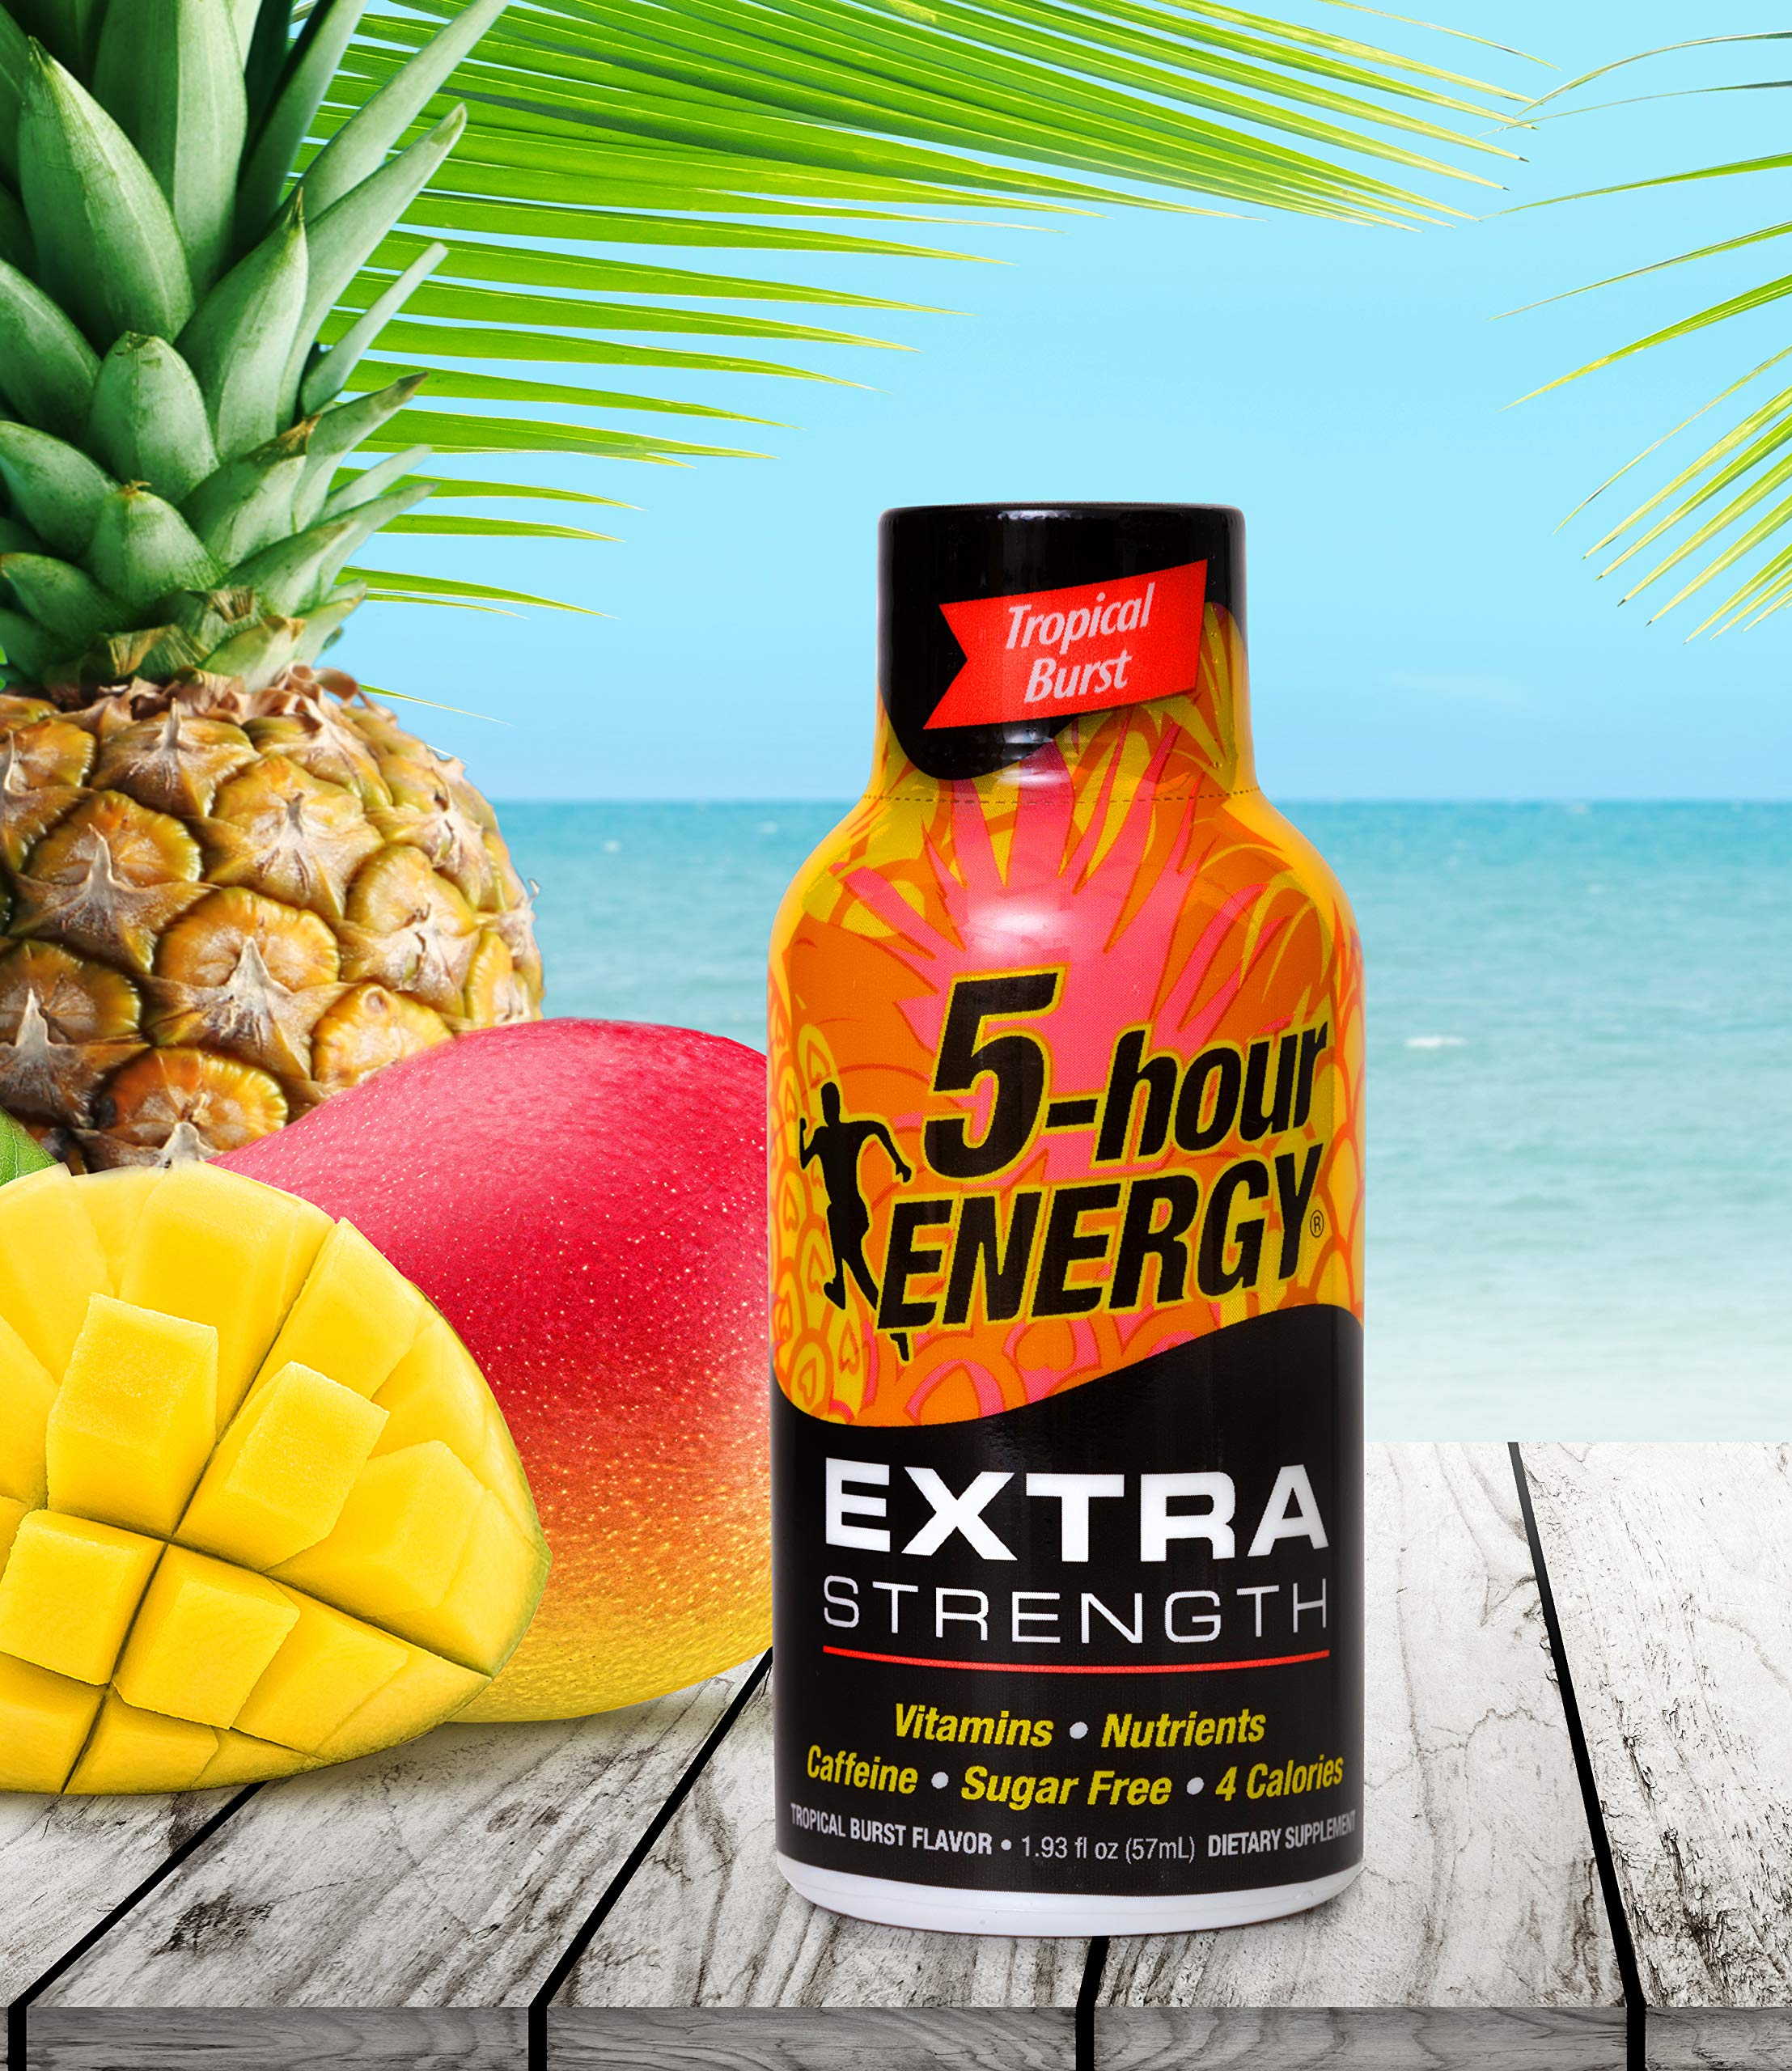 5 Hour Energy Extra Strength, Tropical Burst (12 Count) 7-Eleven Exclusive by 5 Hour Energy